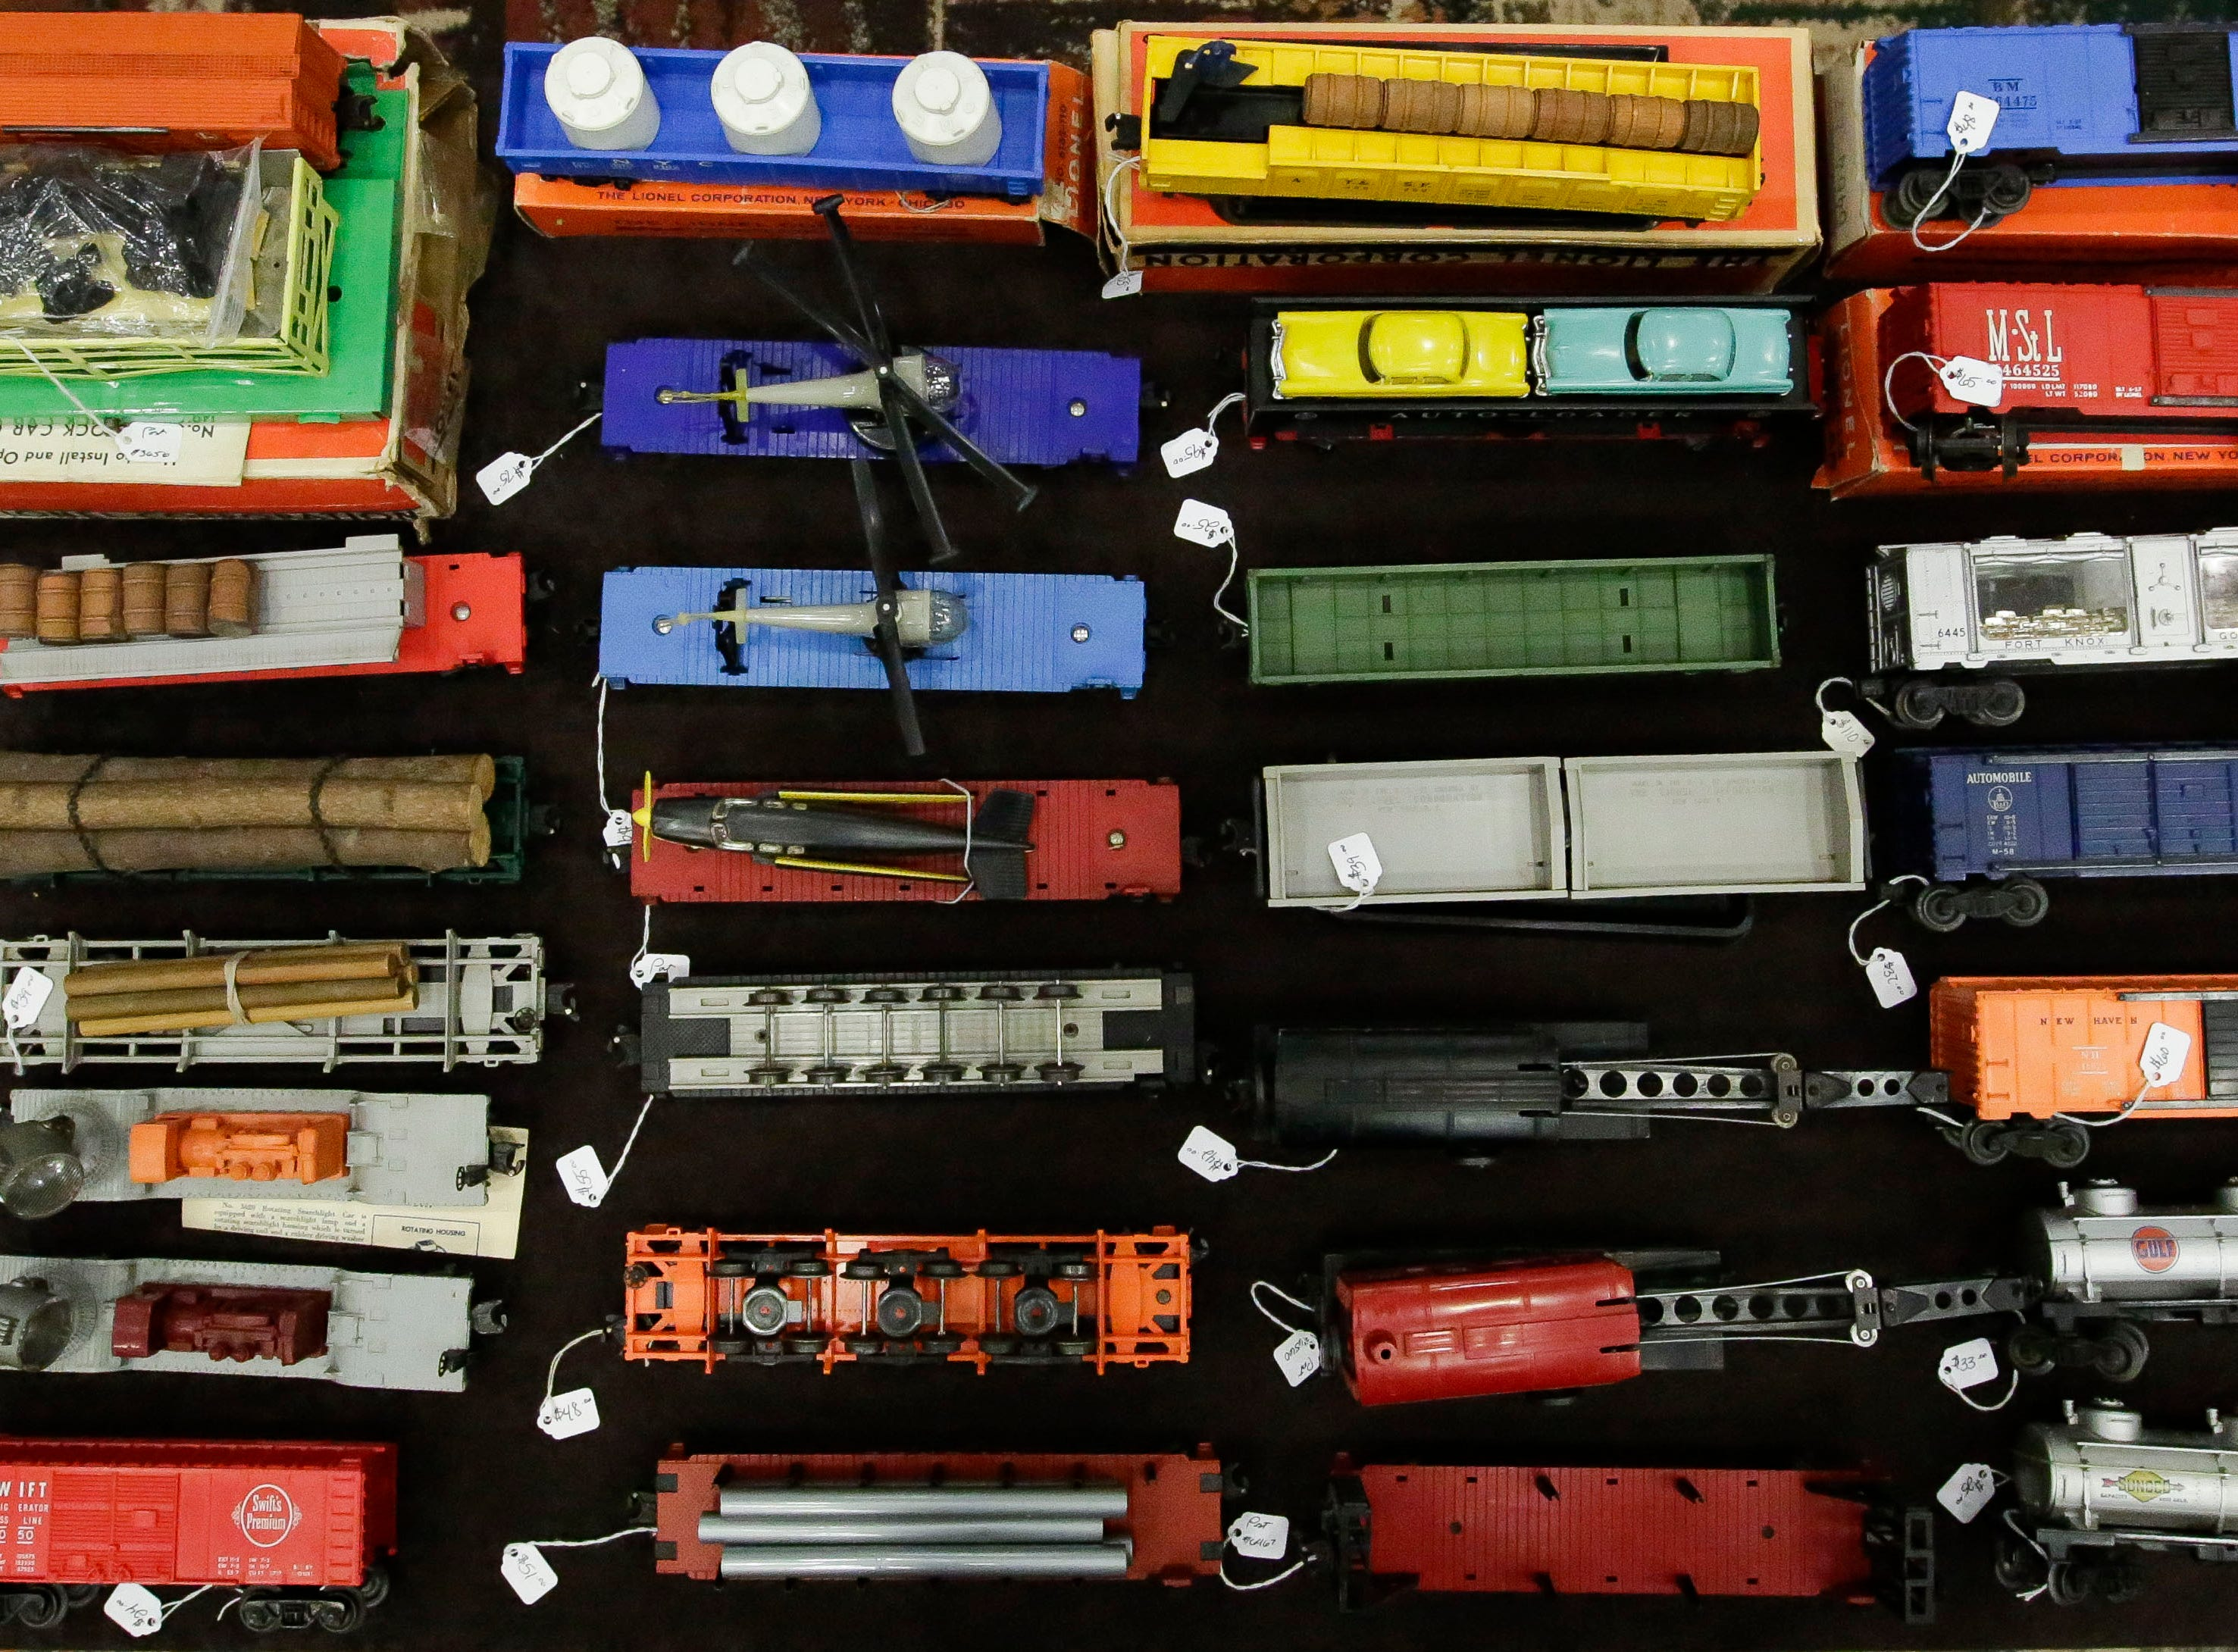 Model train cars are displayed at a sales booth on Sunday, February 3, 2019, during the Arctic Run Model Railroad Show at the Holiday Inn Convention Center in Stevens Point, Wis.Tork Mason/USA TODAY NETWORK-Wisconsin